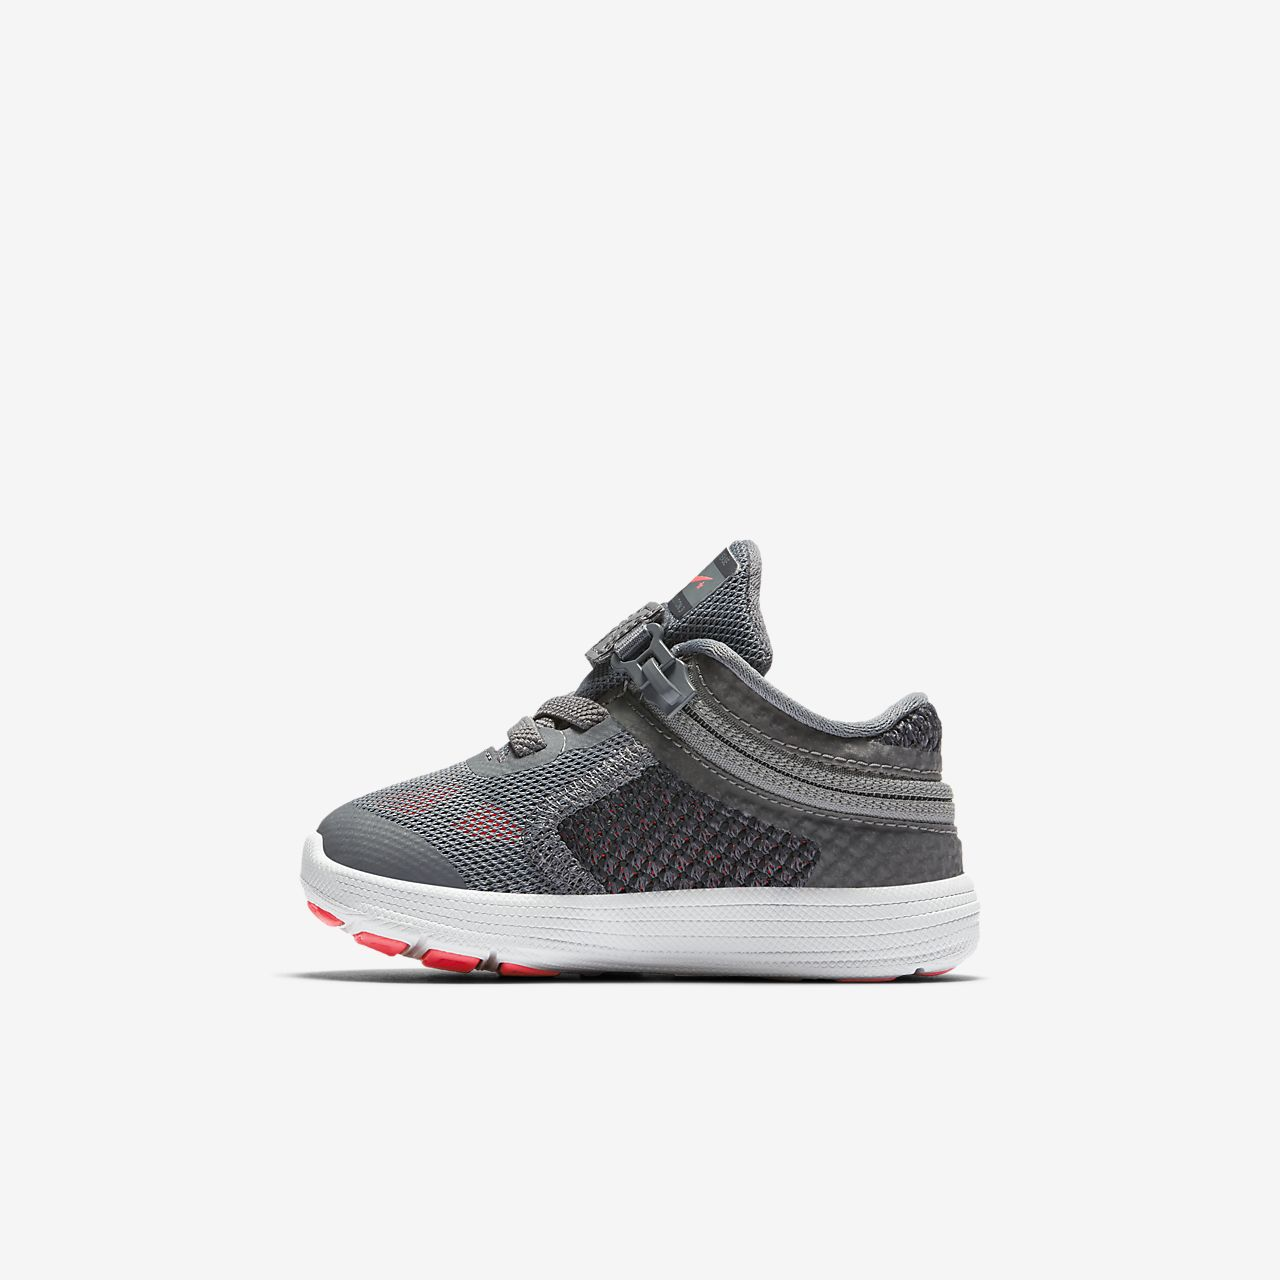 nike shoes with zipper released tests comprehension 913217